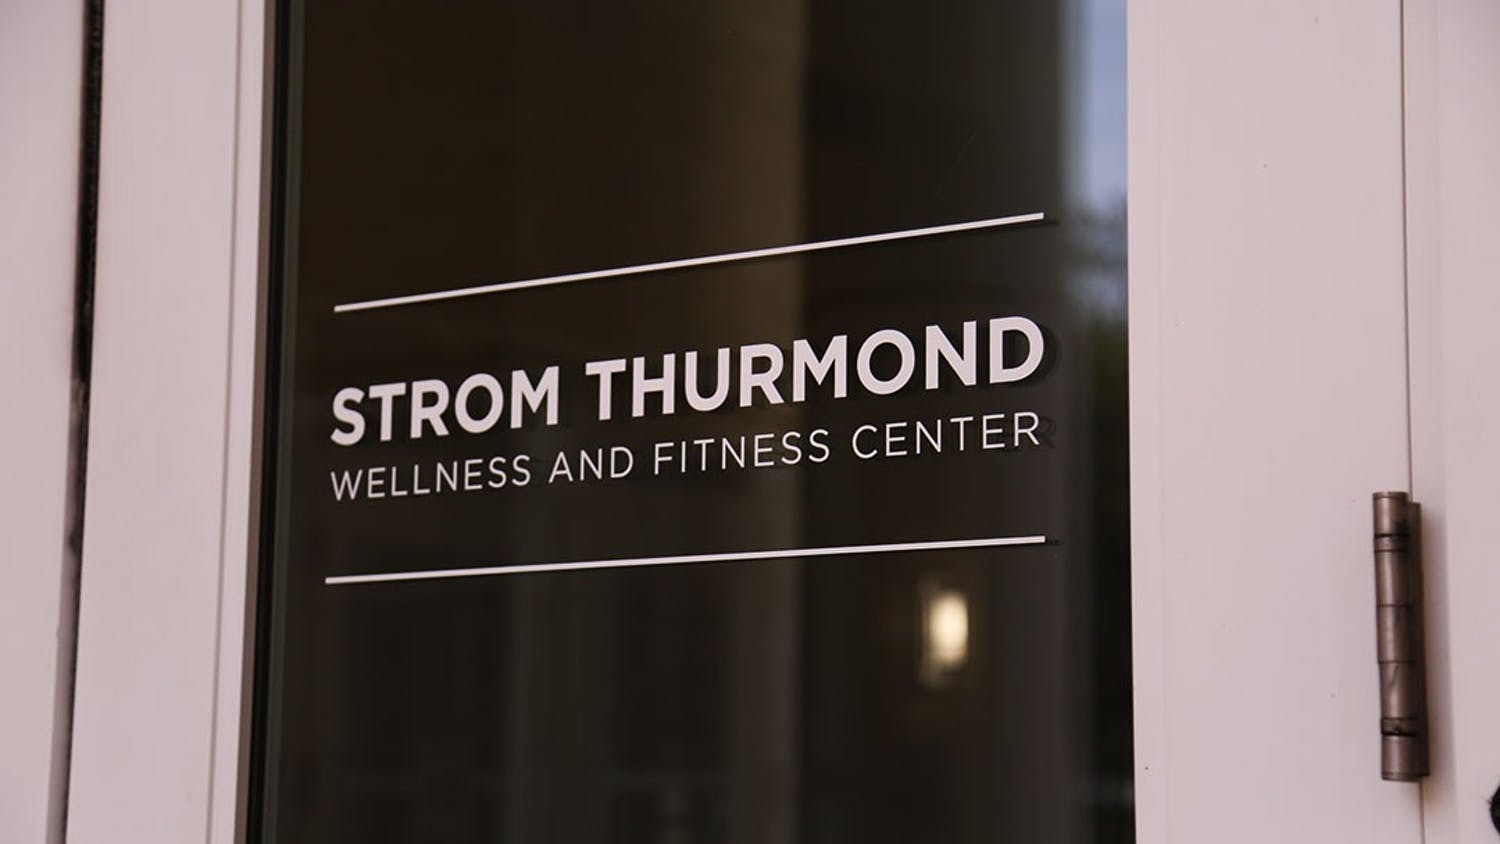 A door marks the entrance to the Strom Thurmond Wellness and Fitness Center.